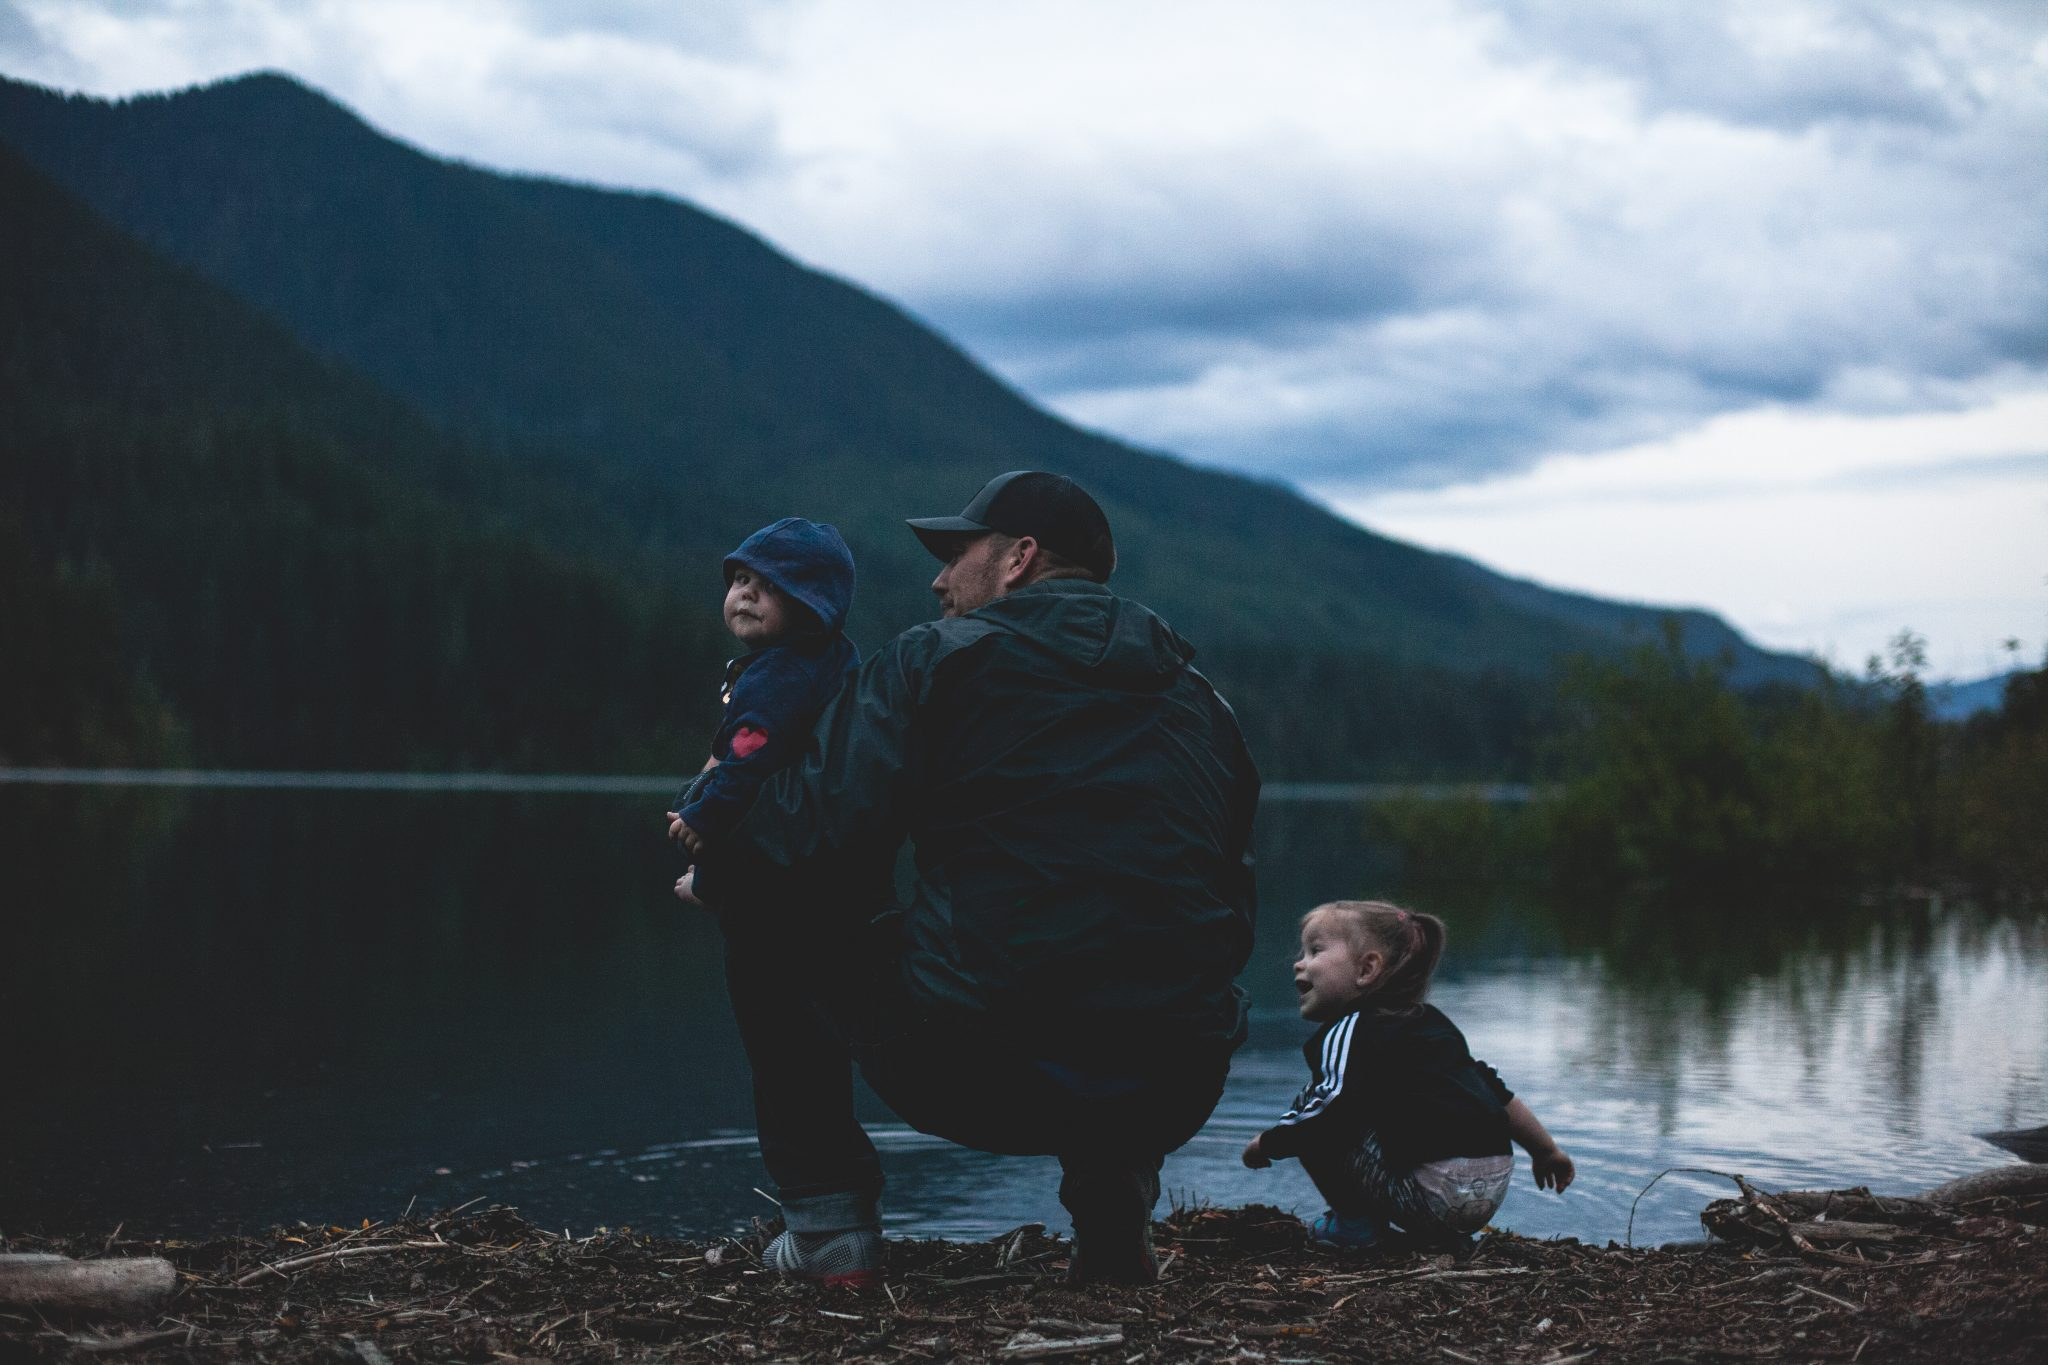 The understated affection of fathers